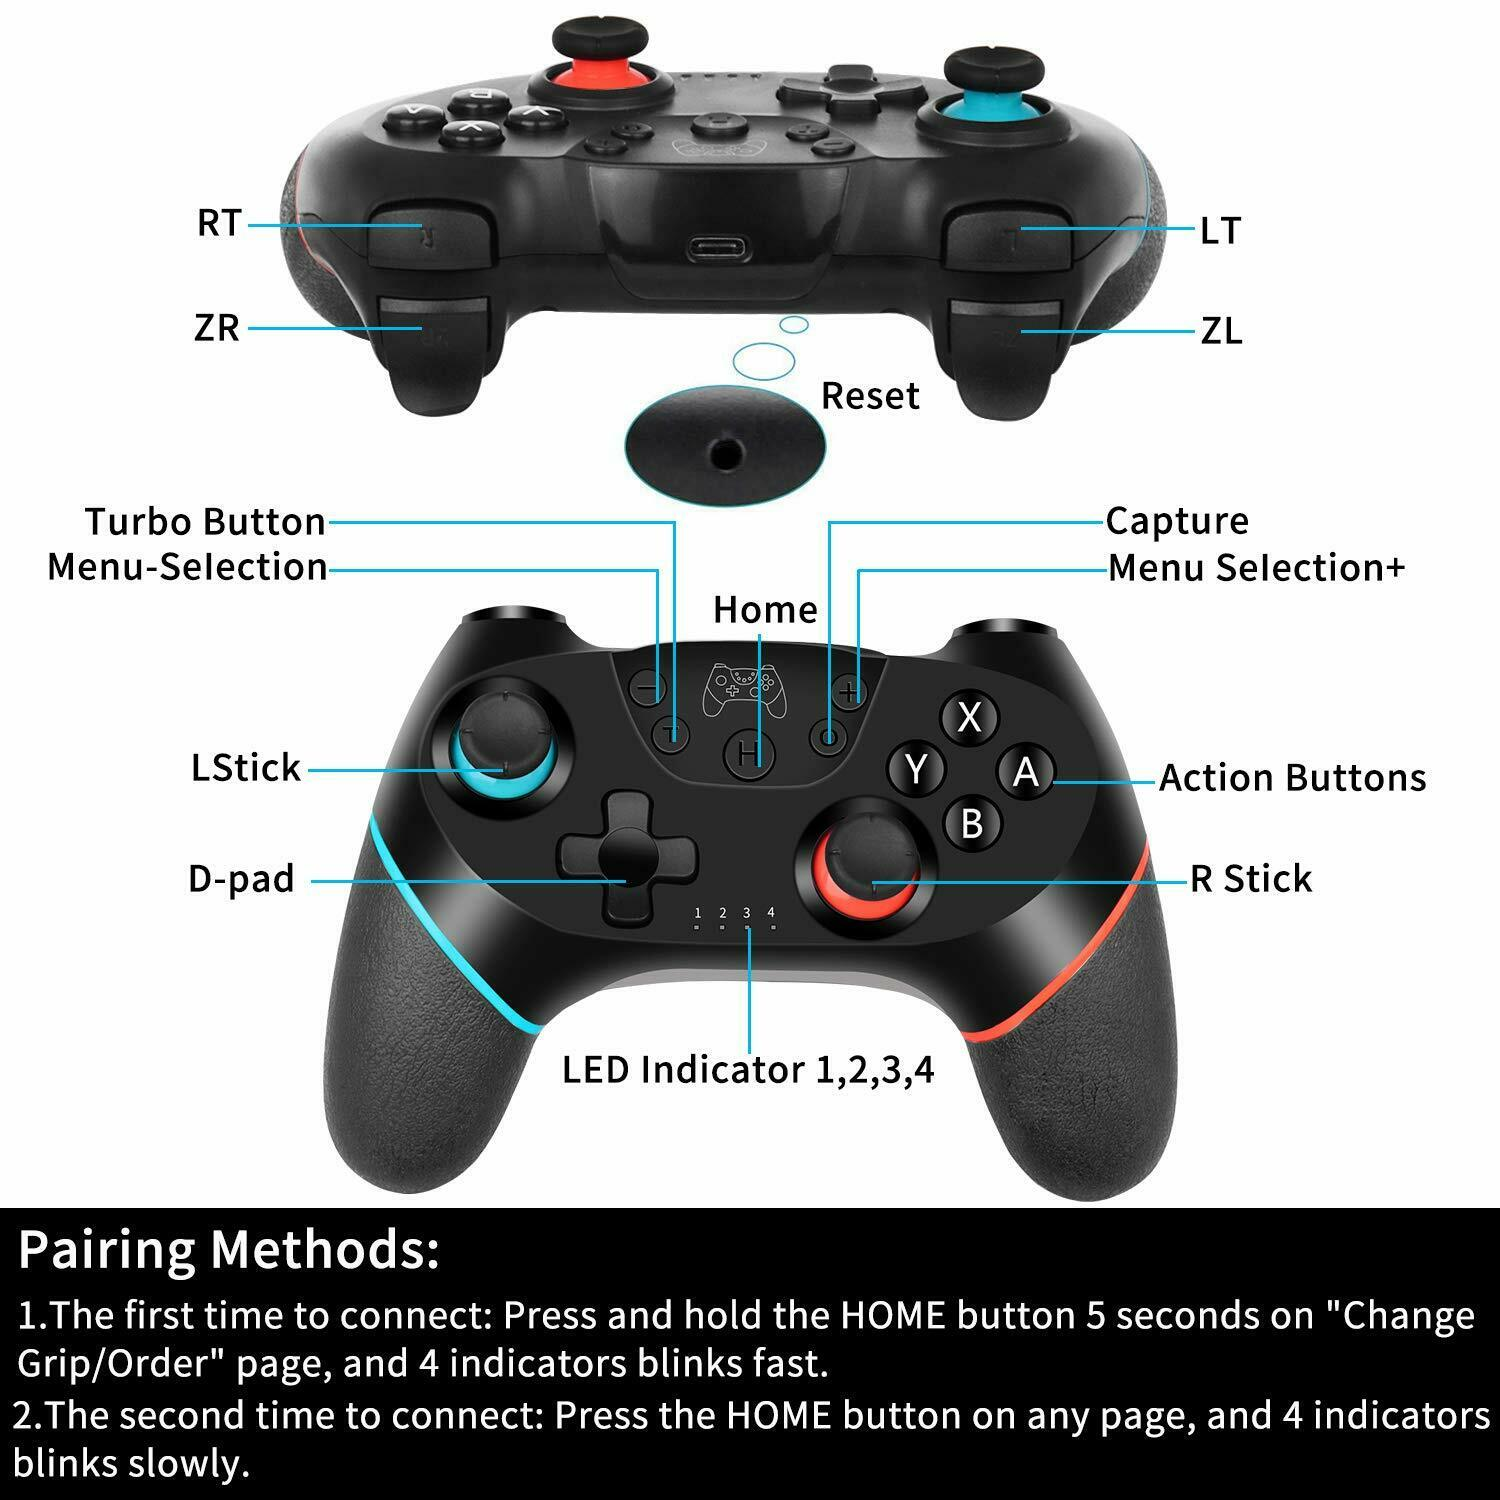 SW-B03 Games Controller Wireless Bluetooth Double Motor Vibration Sensor Two Color Handle for Switch - Goldenrod